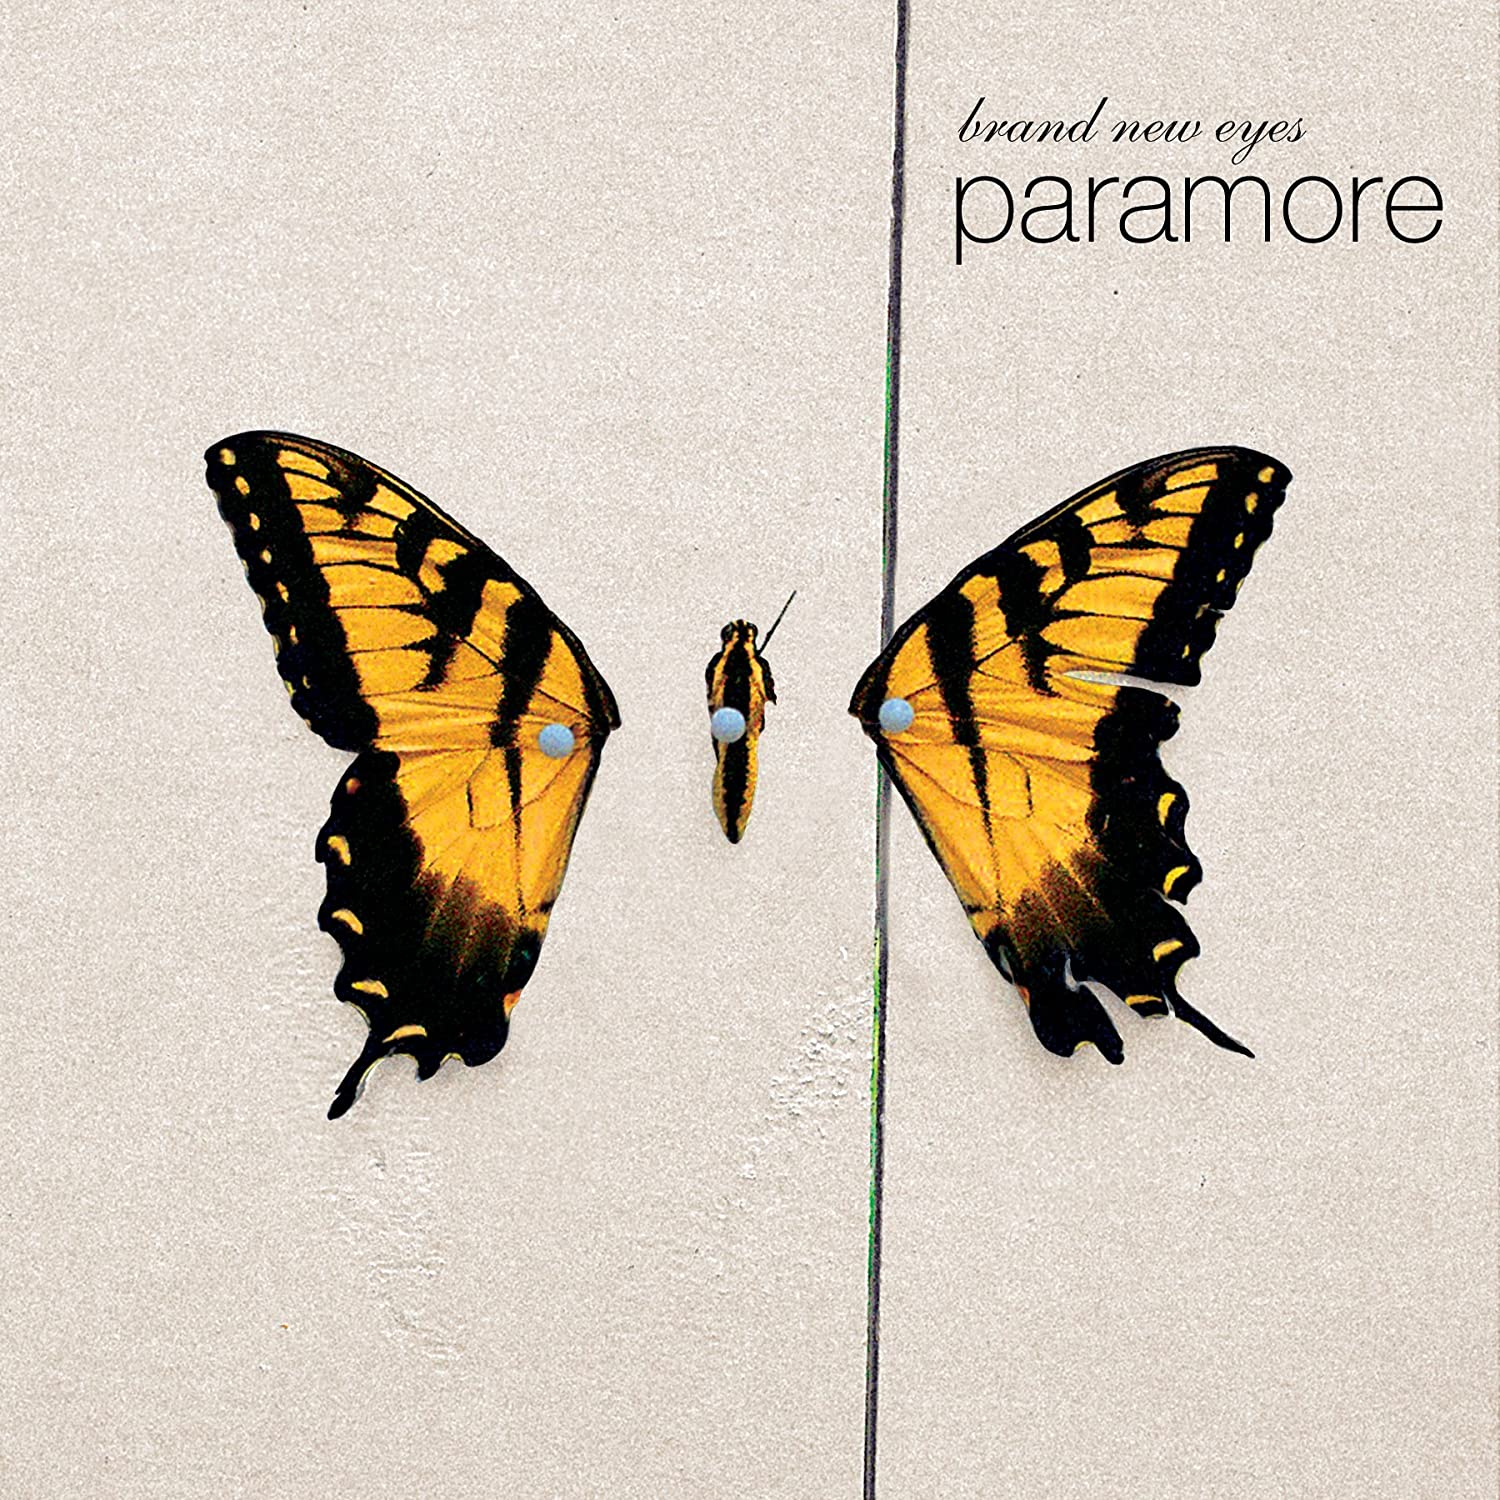 Paramore, Brand New Eyes